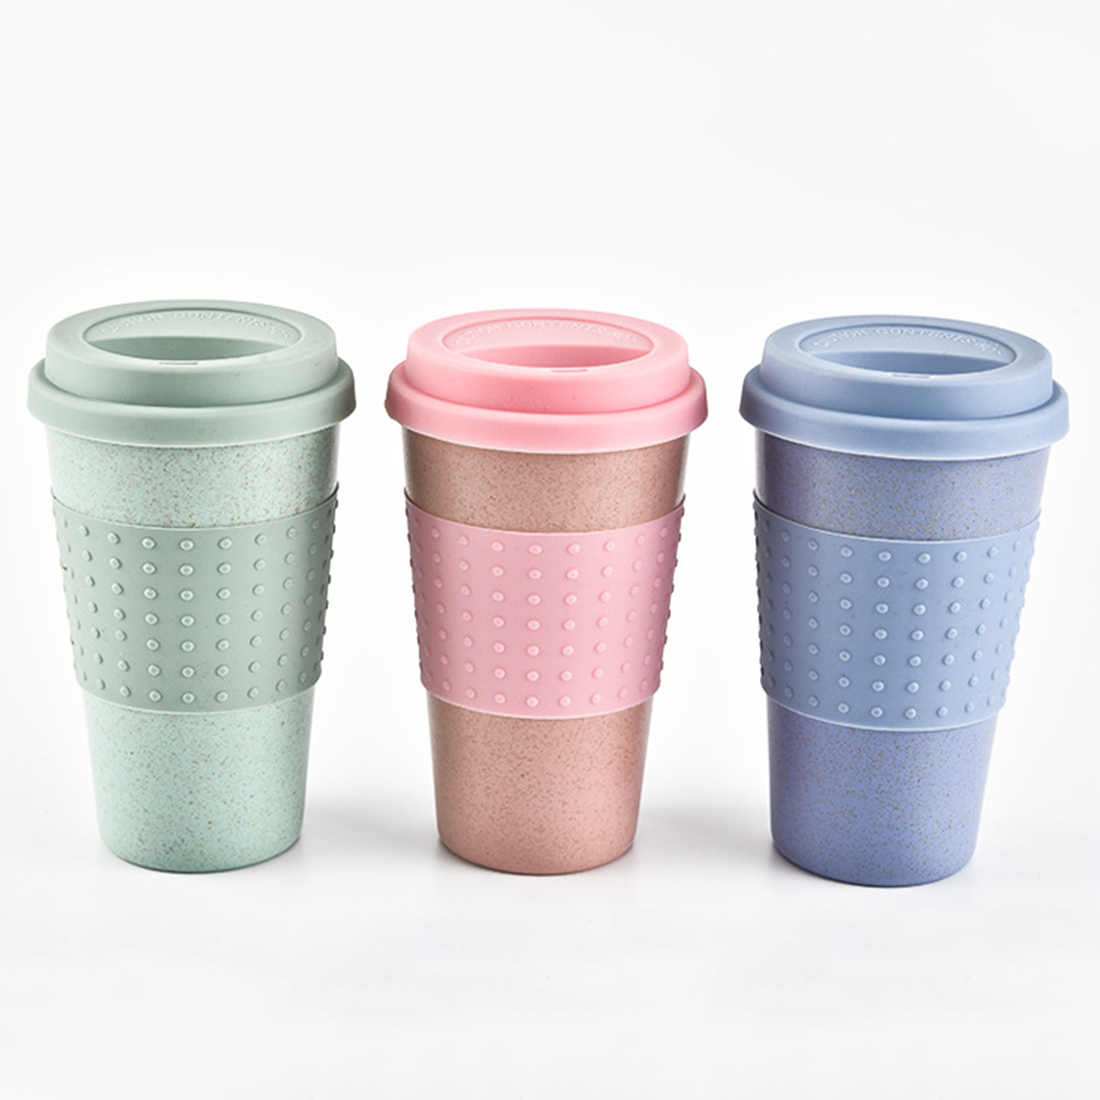 Plastic Wheat Straw Coffee Cups Travel Coffee Mug With Lid Travel Easy Go Cup Portable for Outdoor Camping Hiking Picnic